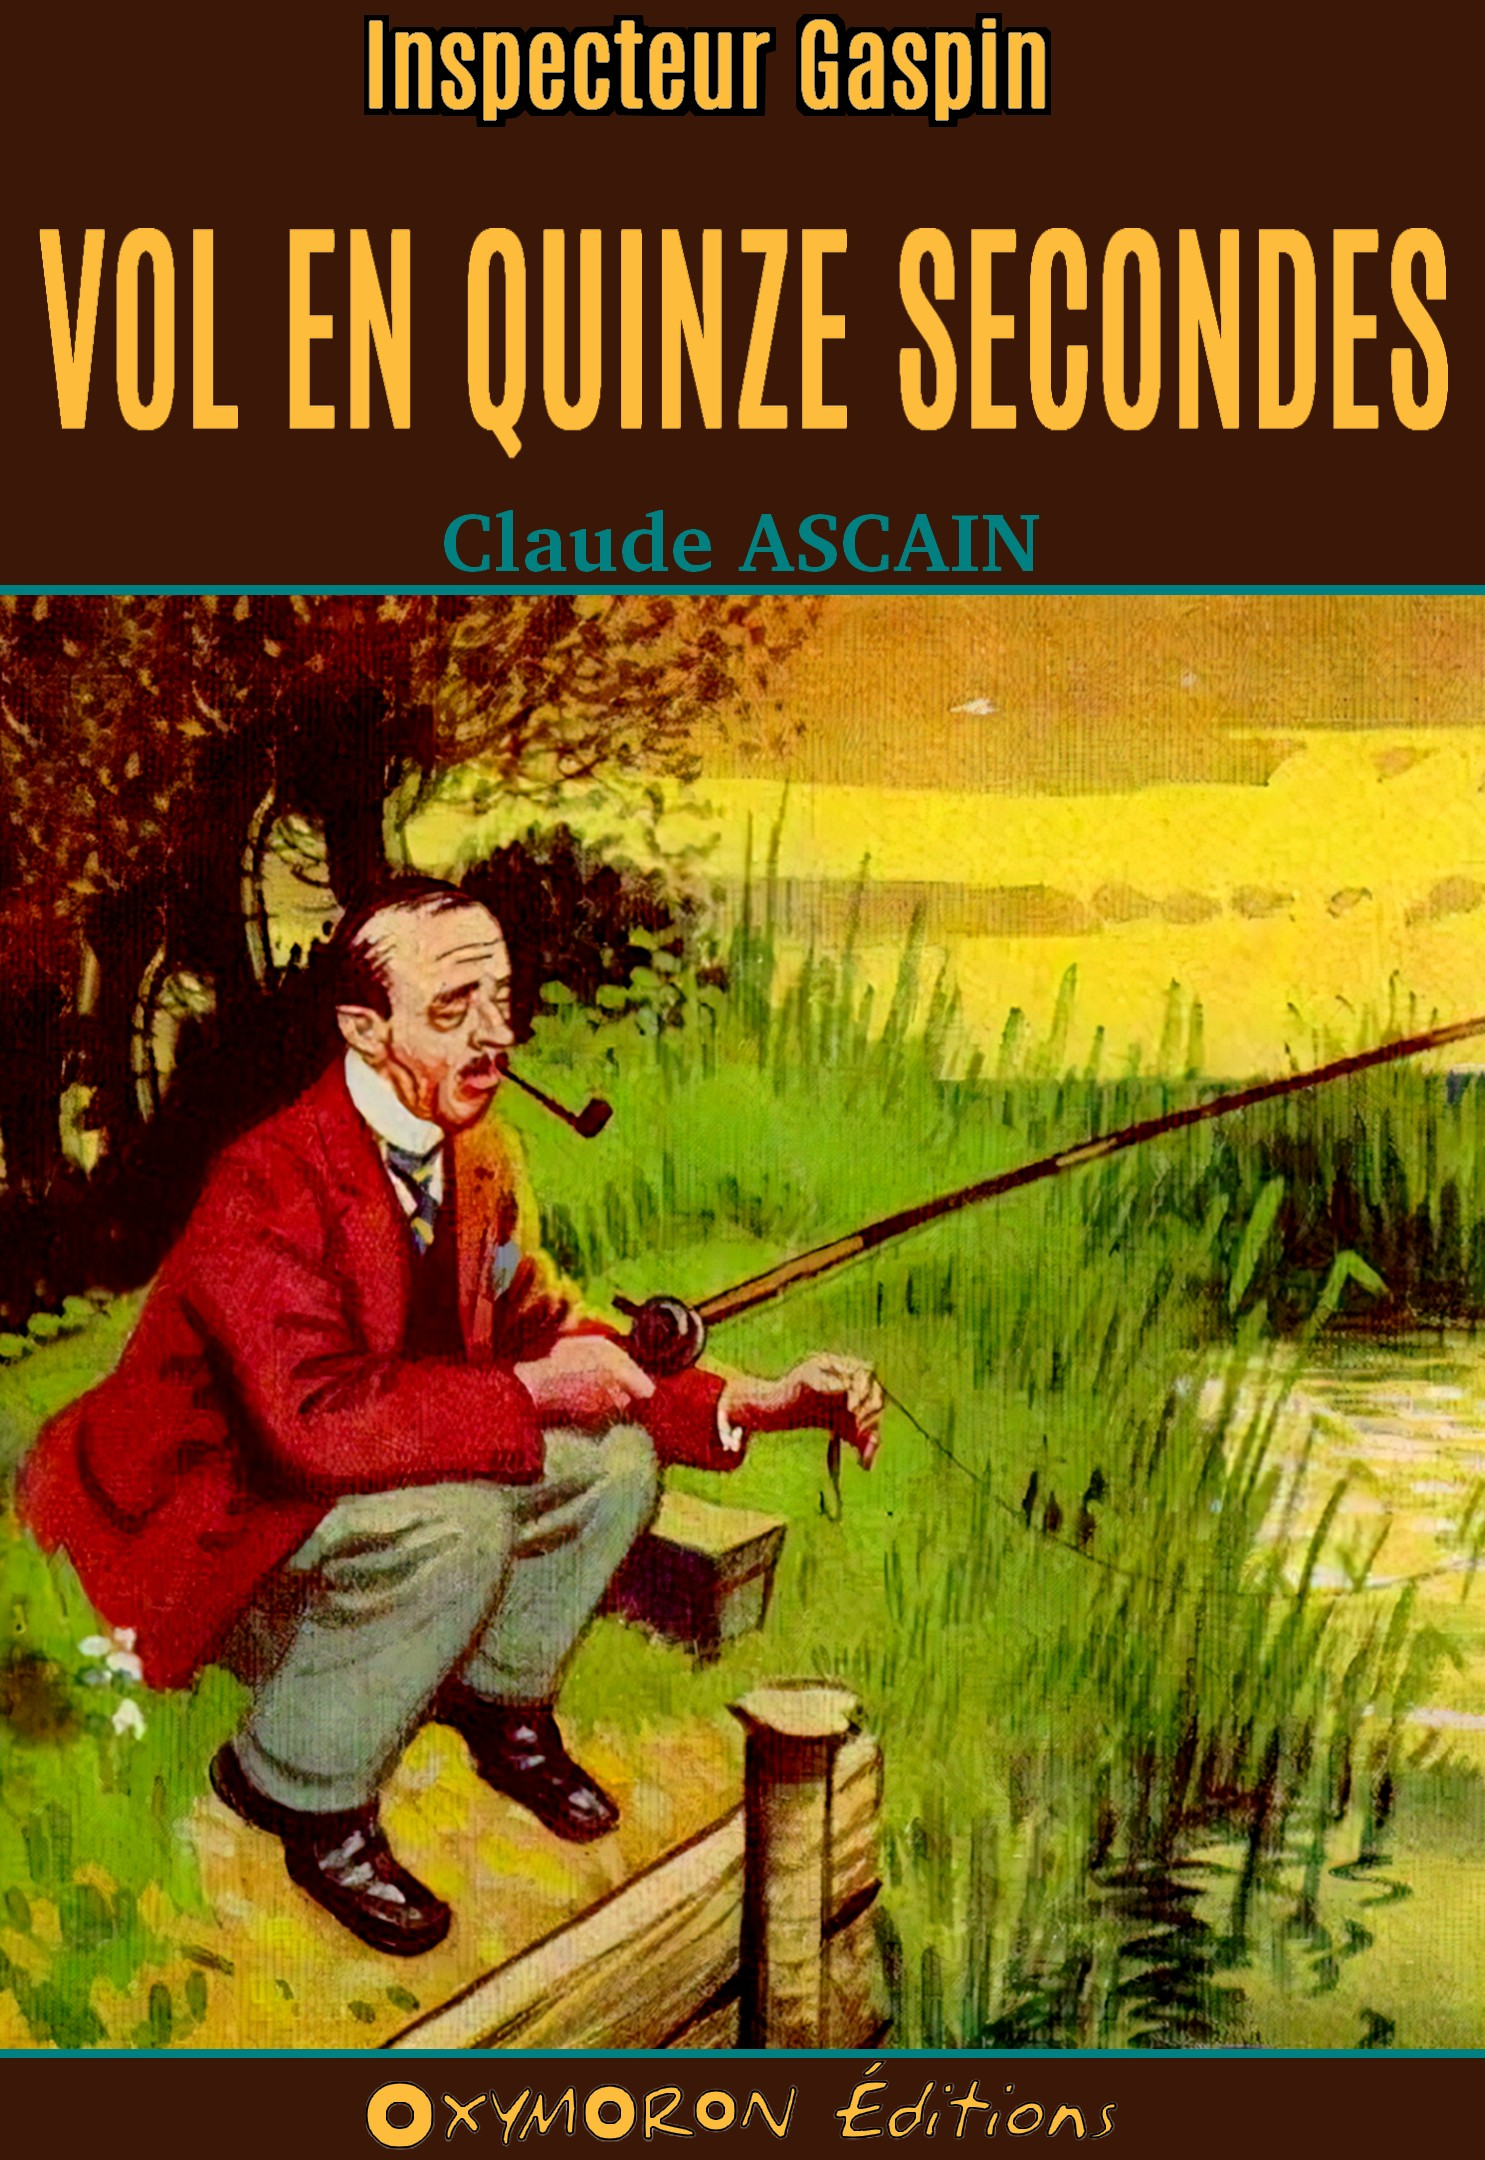 Vol en quinze secondes